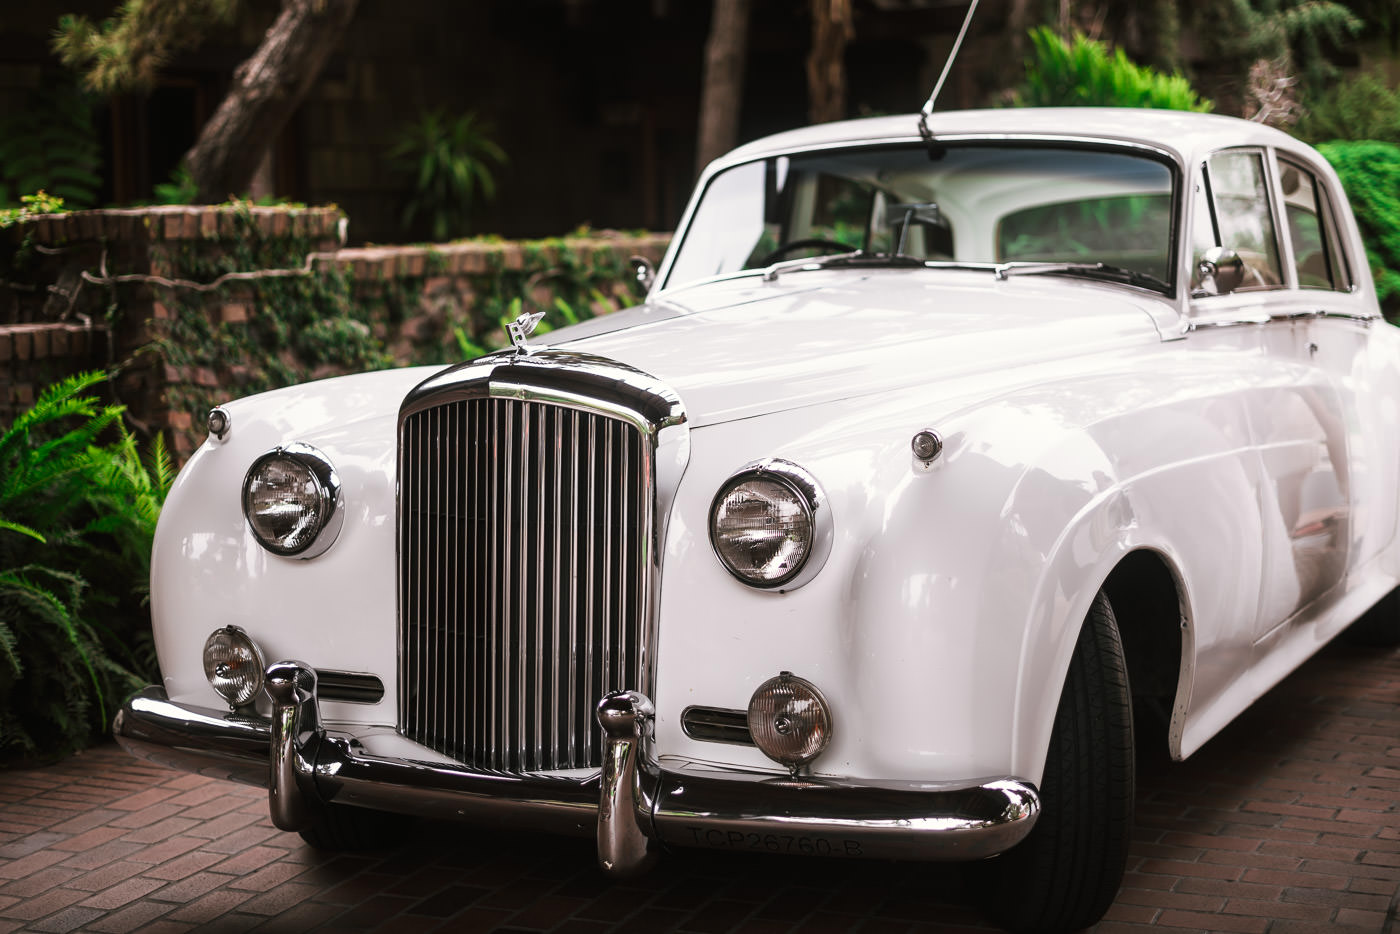 Classic Rolls Royce arrives to carry the bride to her wedding venue.